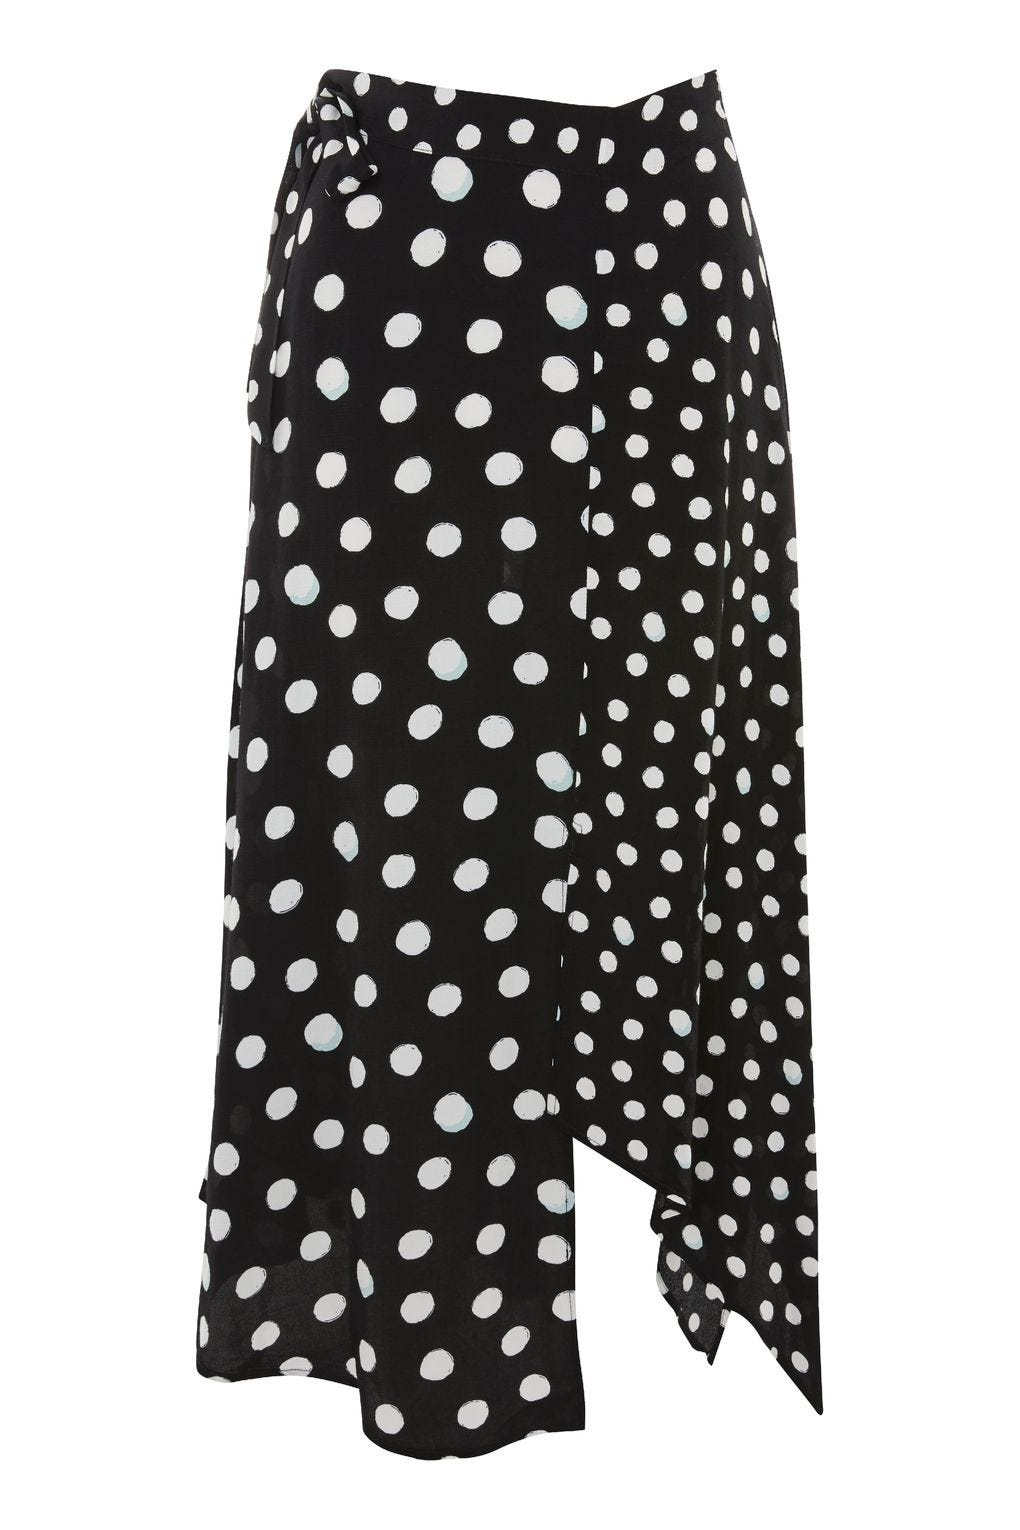 b63f469a1de Cute Ways To Wear The Polka Dot Trend Winter 2018